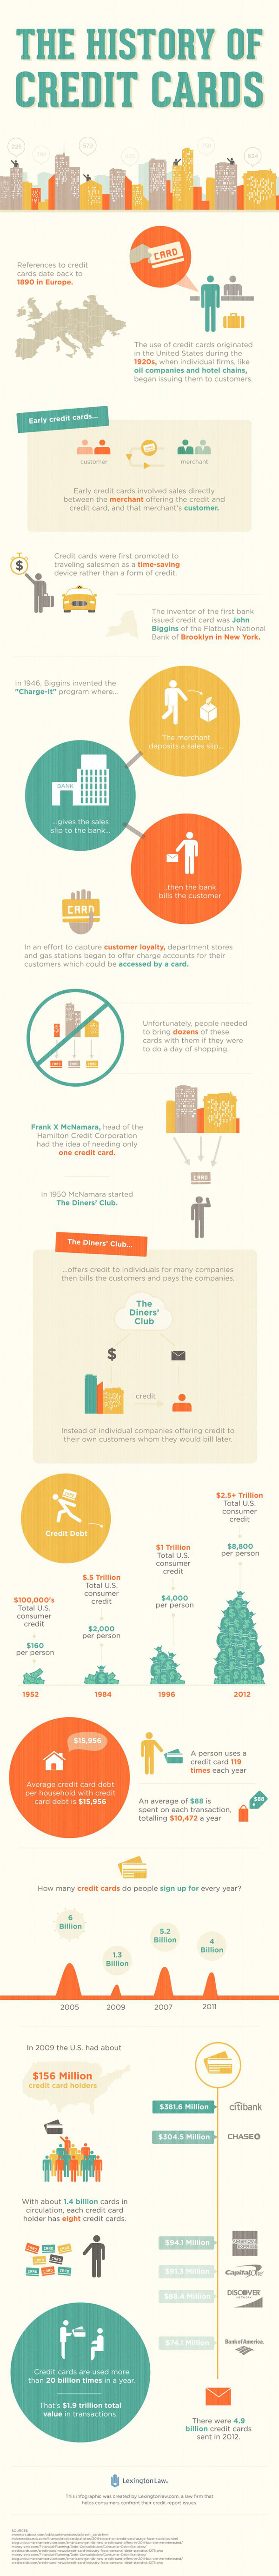 The History of Credit Cards Infographic